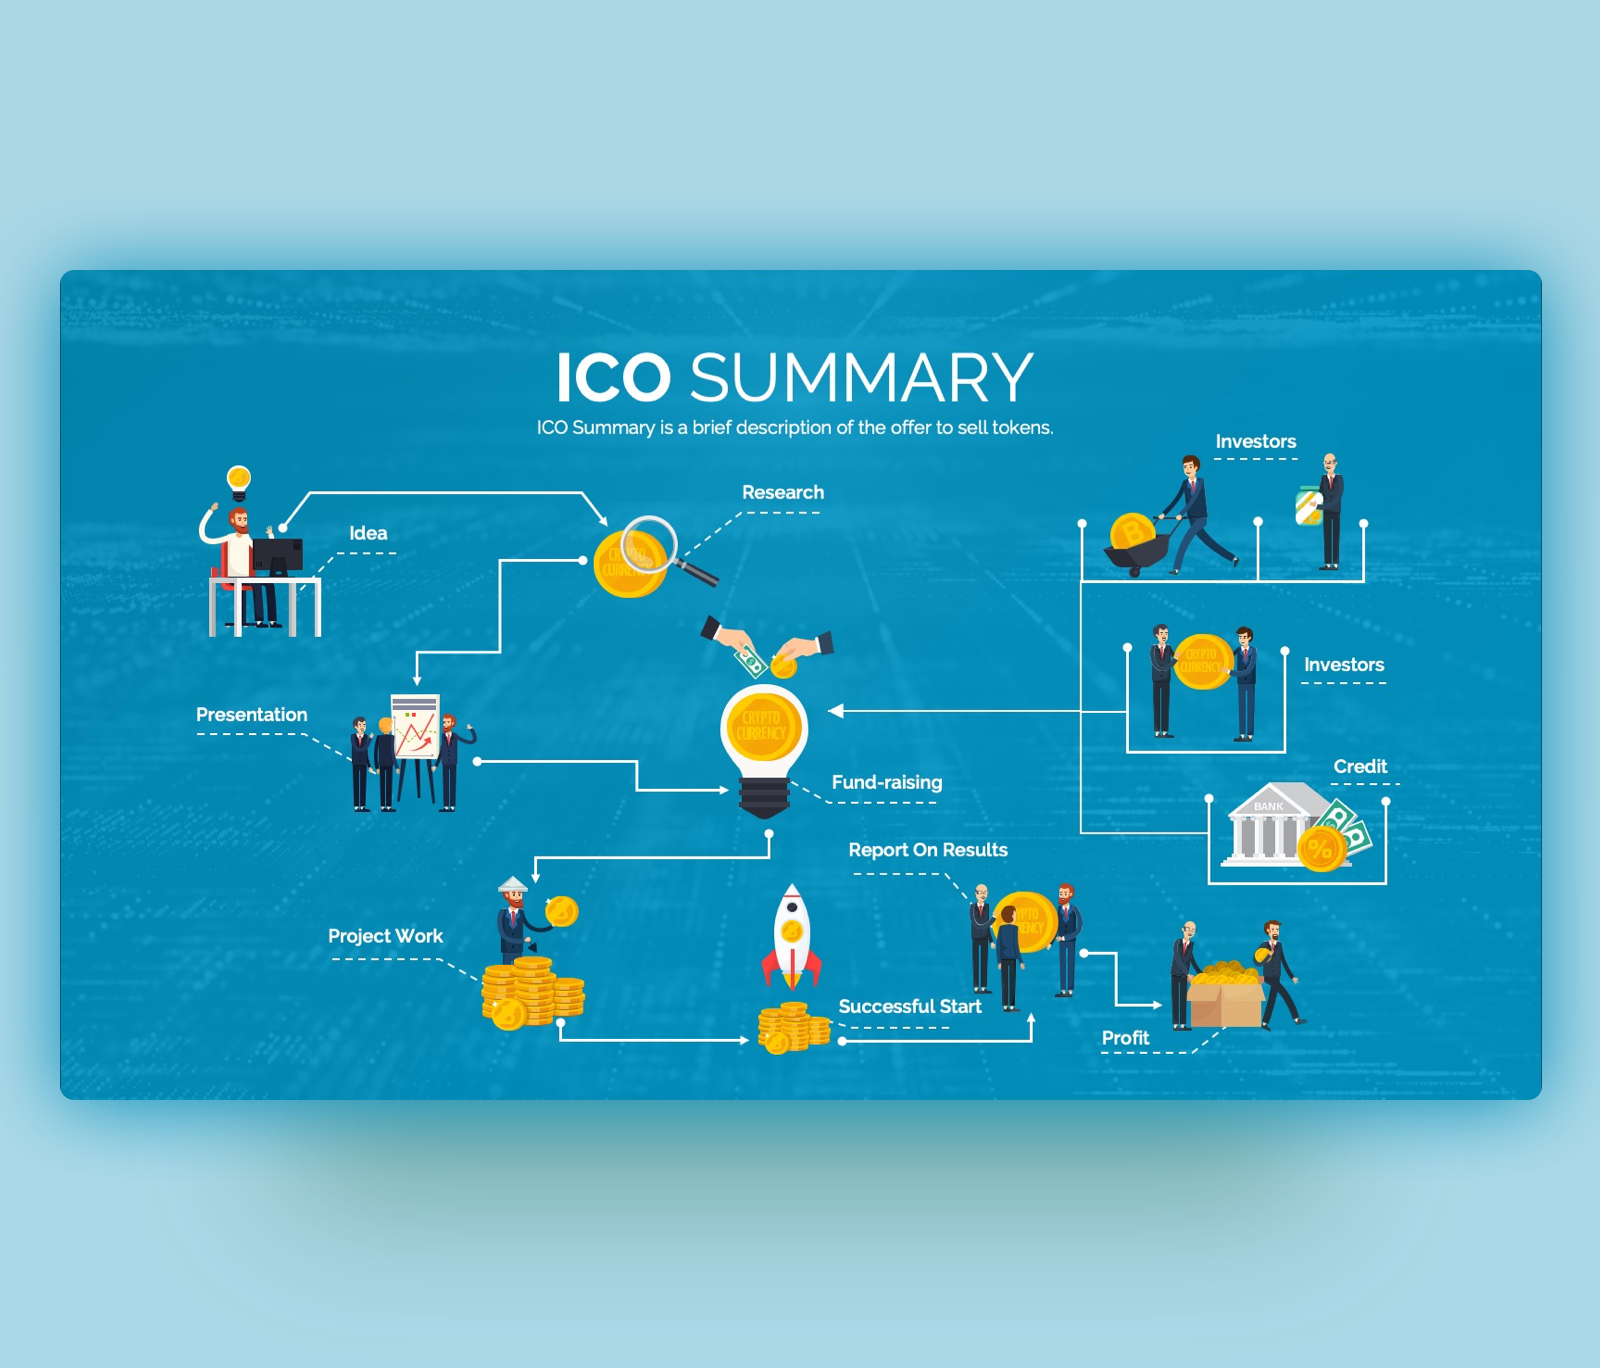 ICO Token Infographic SUMMARY PPT Free Download